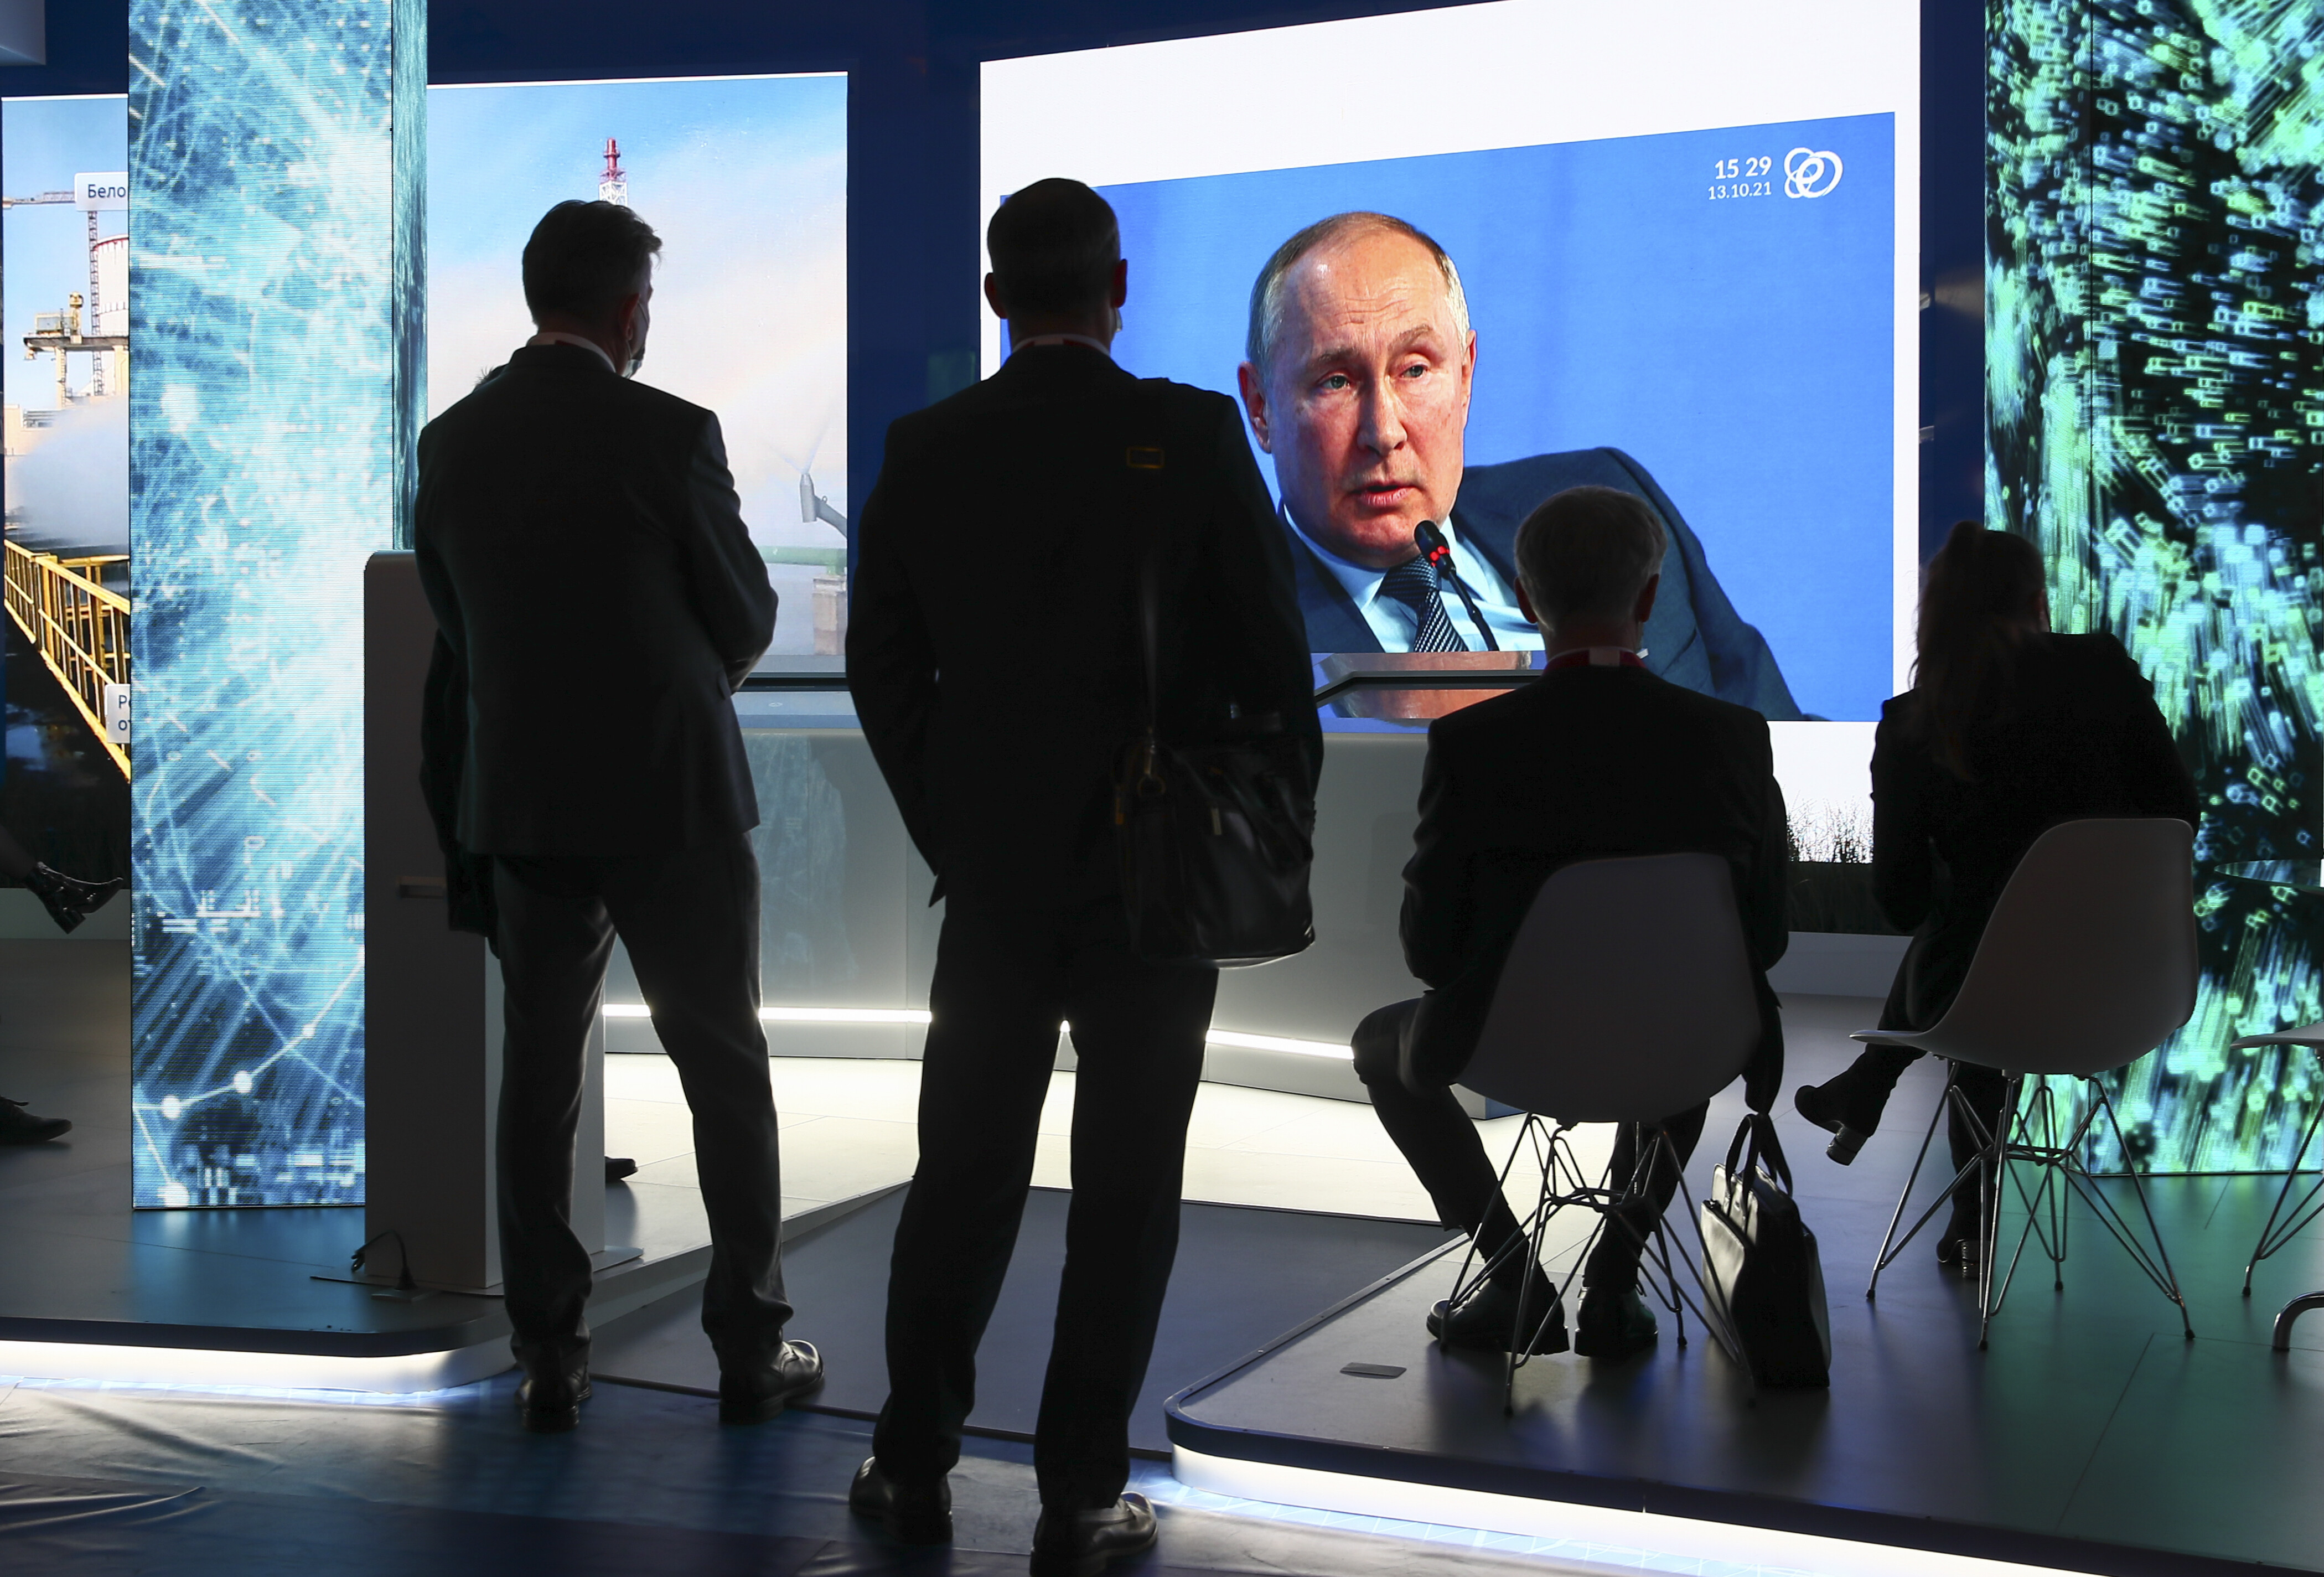 Vladimir Putin says Russia is not using energy as a weapon